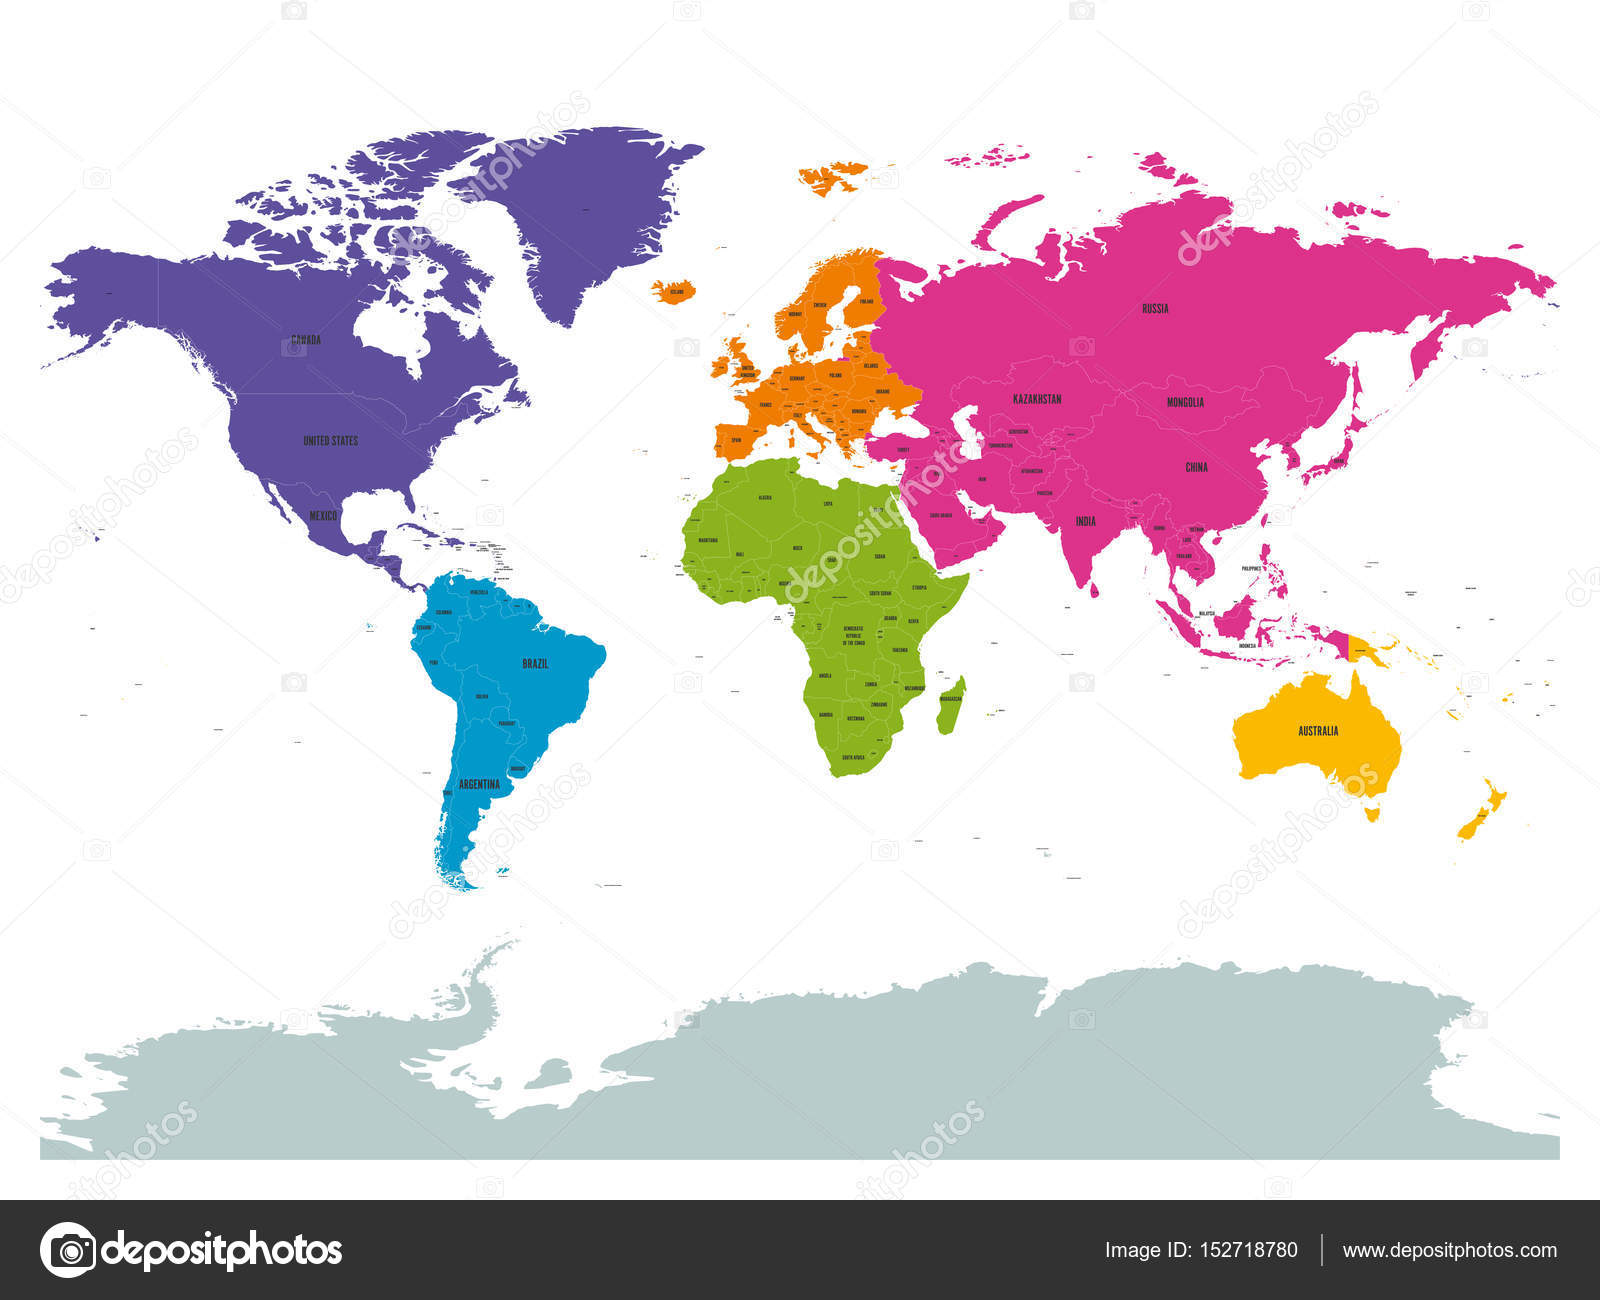 World Map With Country Labels.Political World Colored By Continents With Country Labels Om White